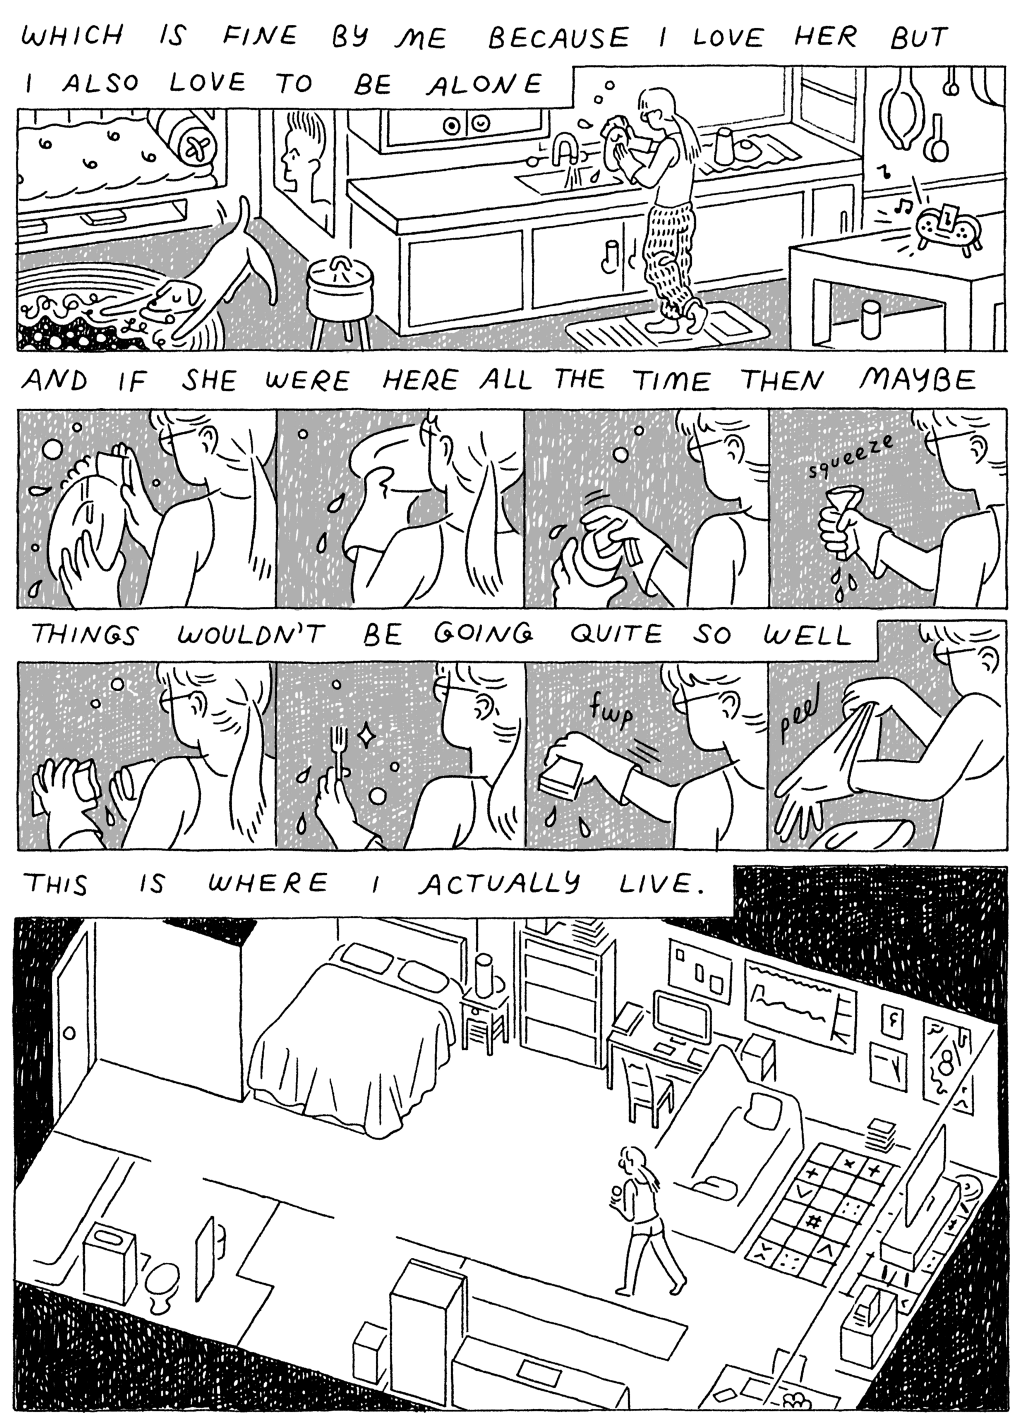 Panel 1:  (Woman, washing dishes) Which is fine by me I love her but I also love being alone.   Panel 2:  (Woman soaping and rinsing dishes.)  And if she were here all the time then maybe things wouldn't be going so well.   Panel 3:  (Woman, walking through her small, studio apartment) This is where I actually live.